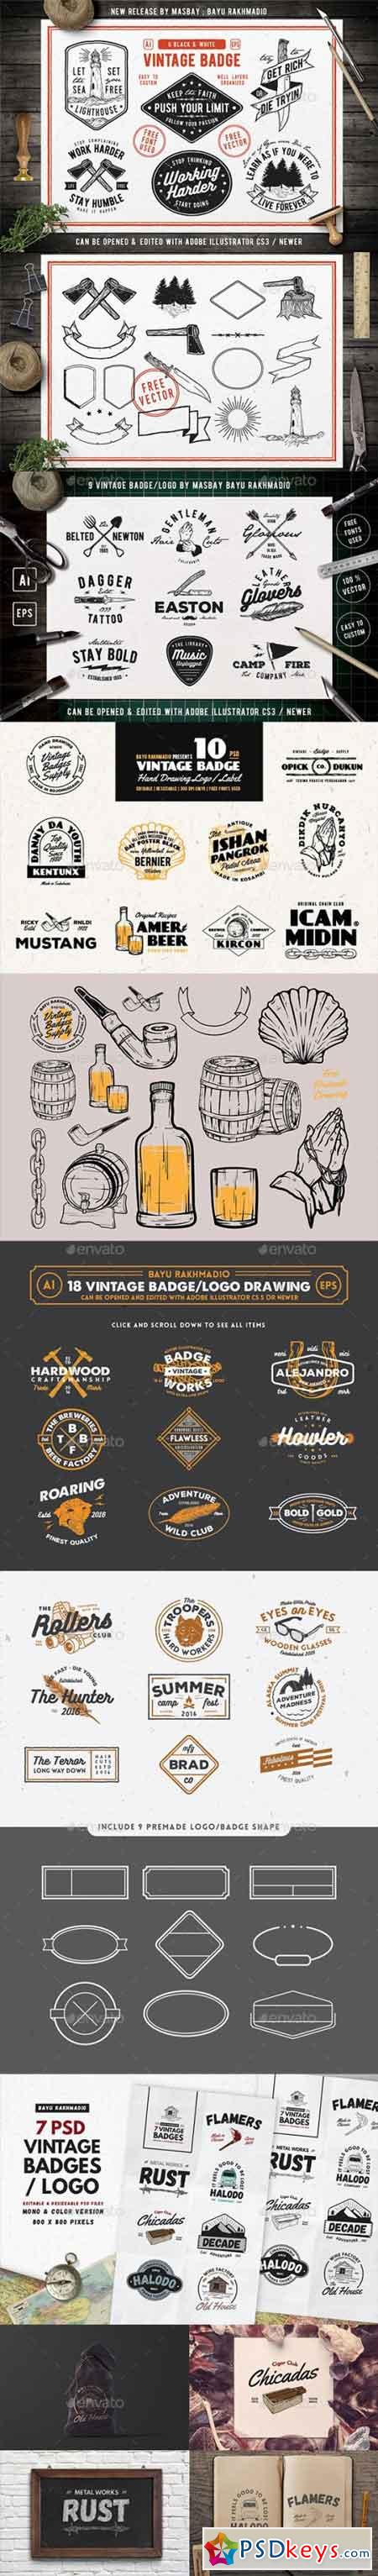 50 Vintage Badges Bundle 20547578